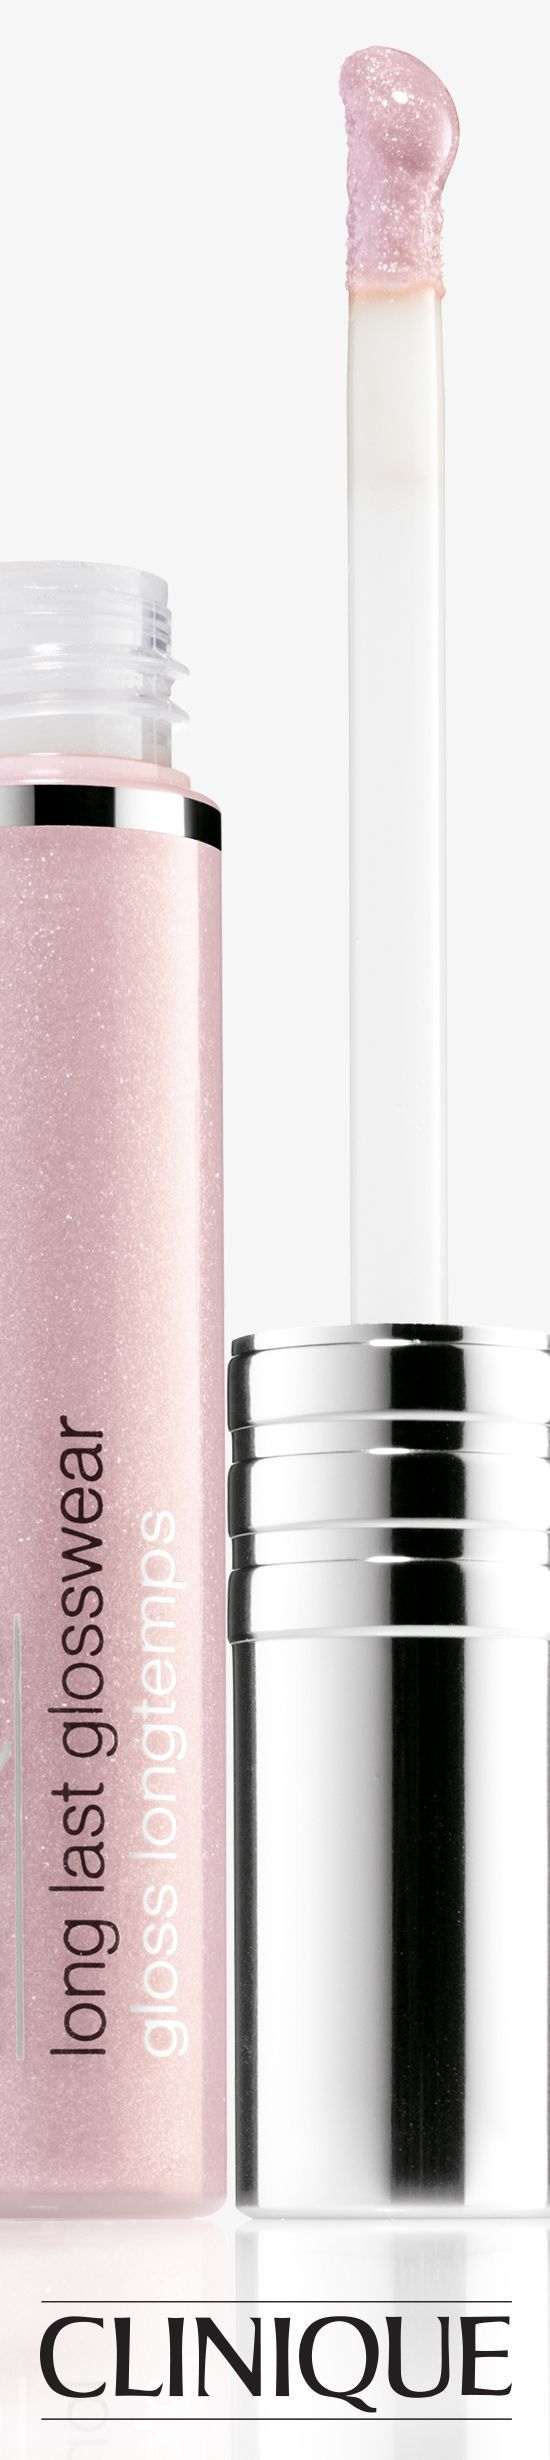 Whisper is one of my top 5 Clinque glosses. Always keep an unopened one in my stash #lipgloss